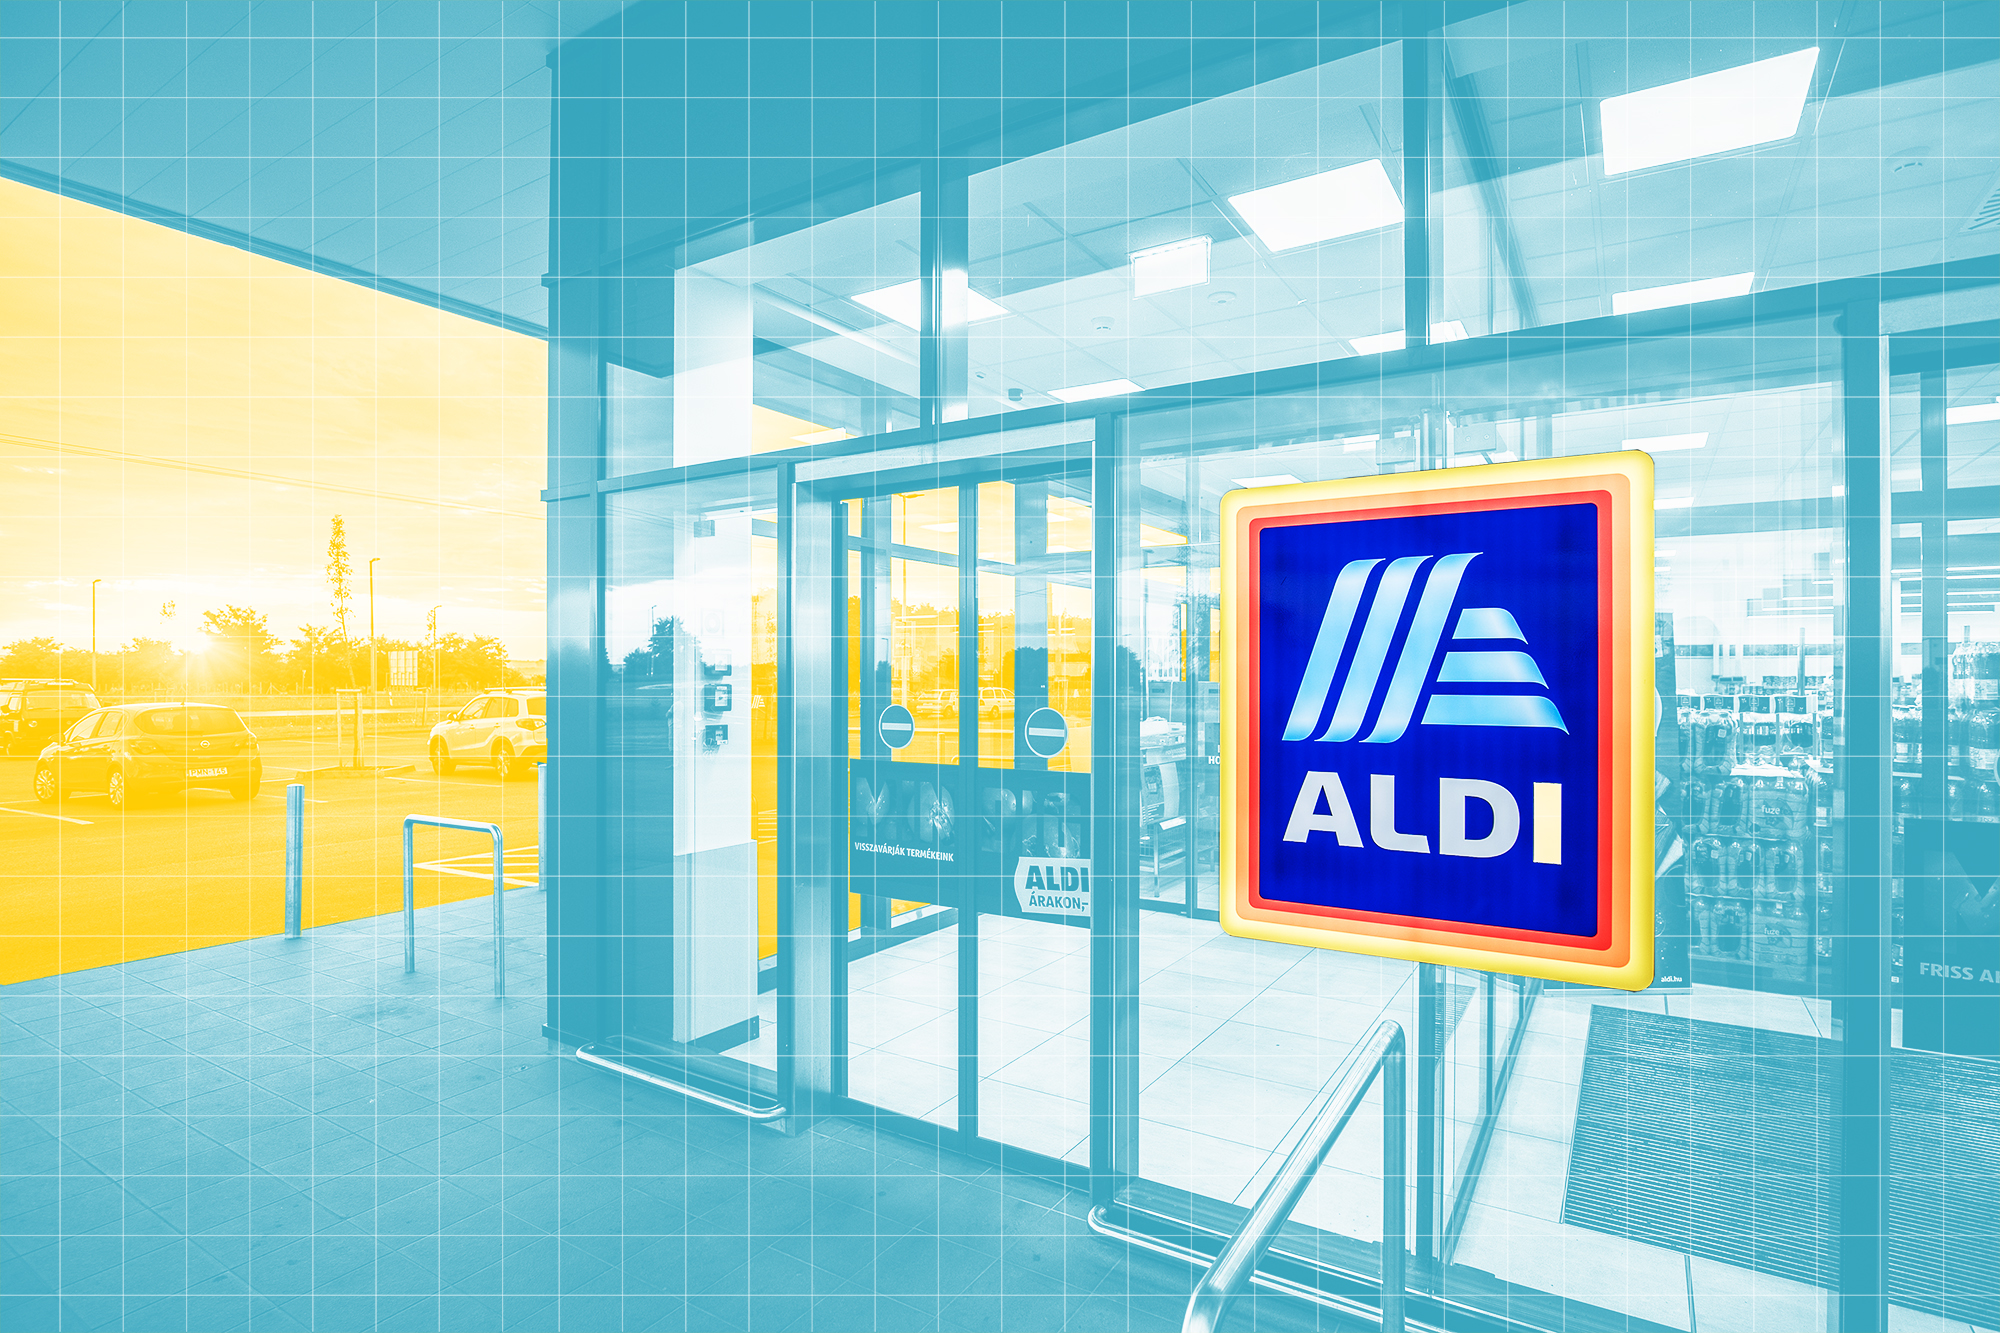 Aldi store front with a designed treatment